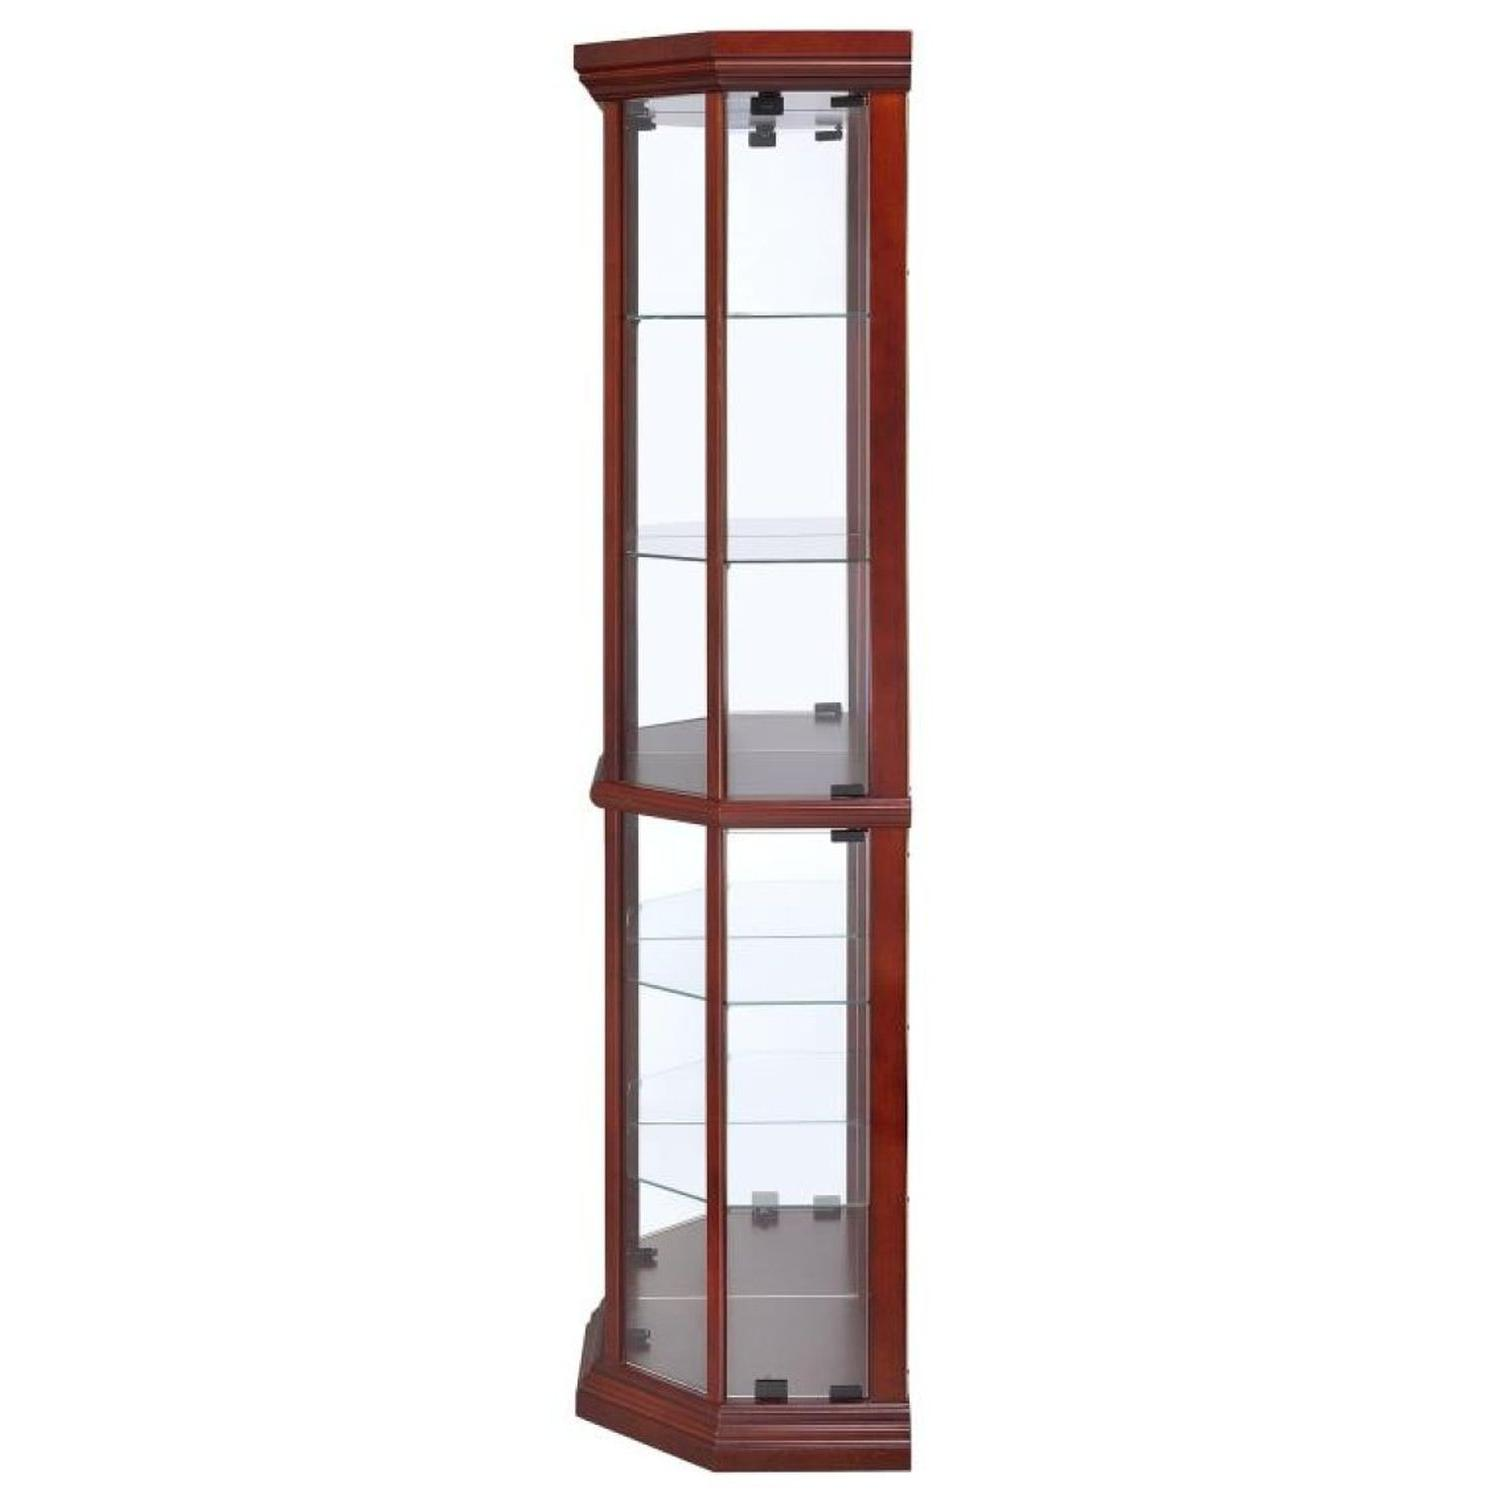 Curio Cabinet in Warm Brown w/ Glass Panels - image-2